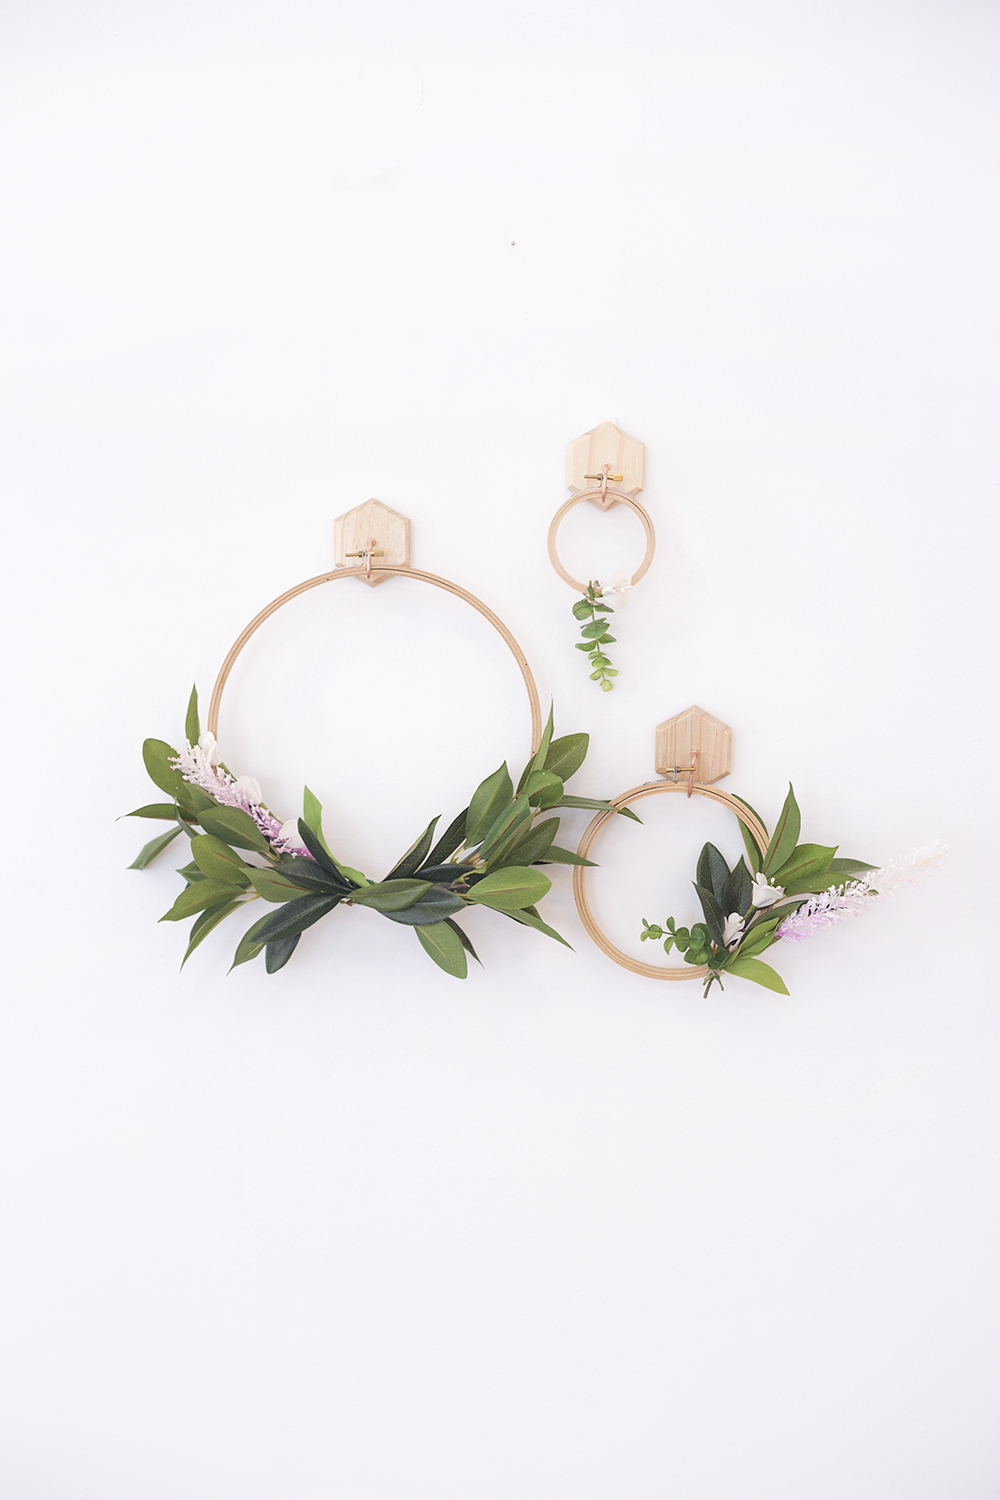 spring faux wreath | hanging wreath diy | modern floral wreath